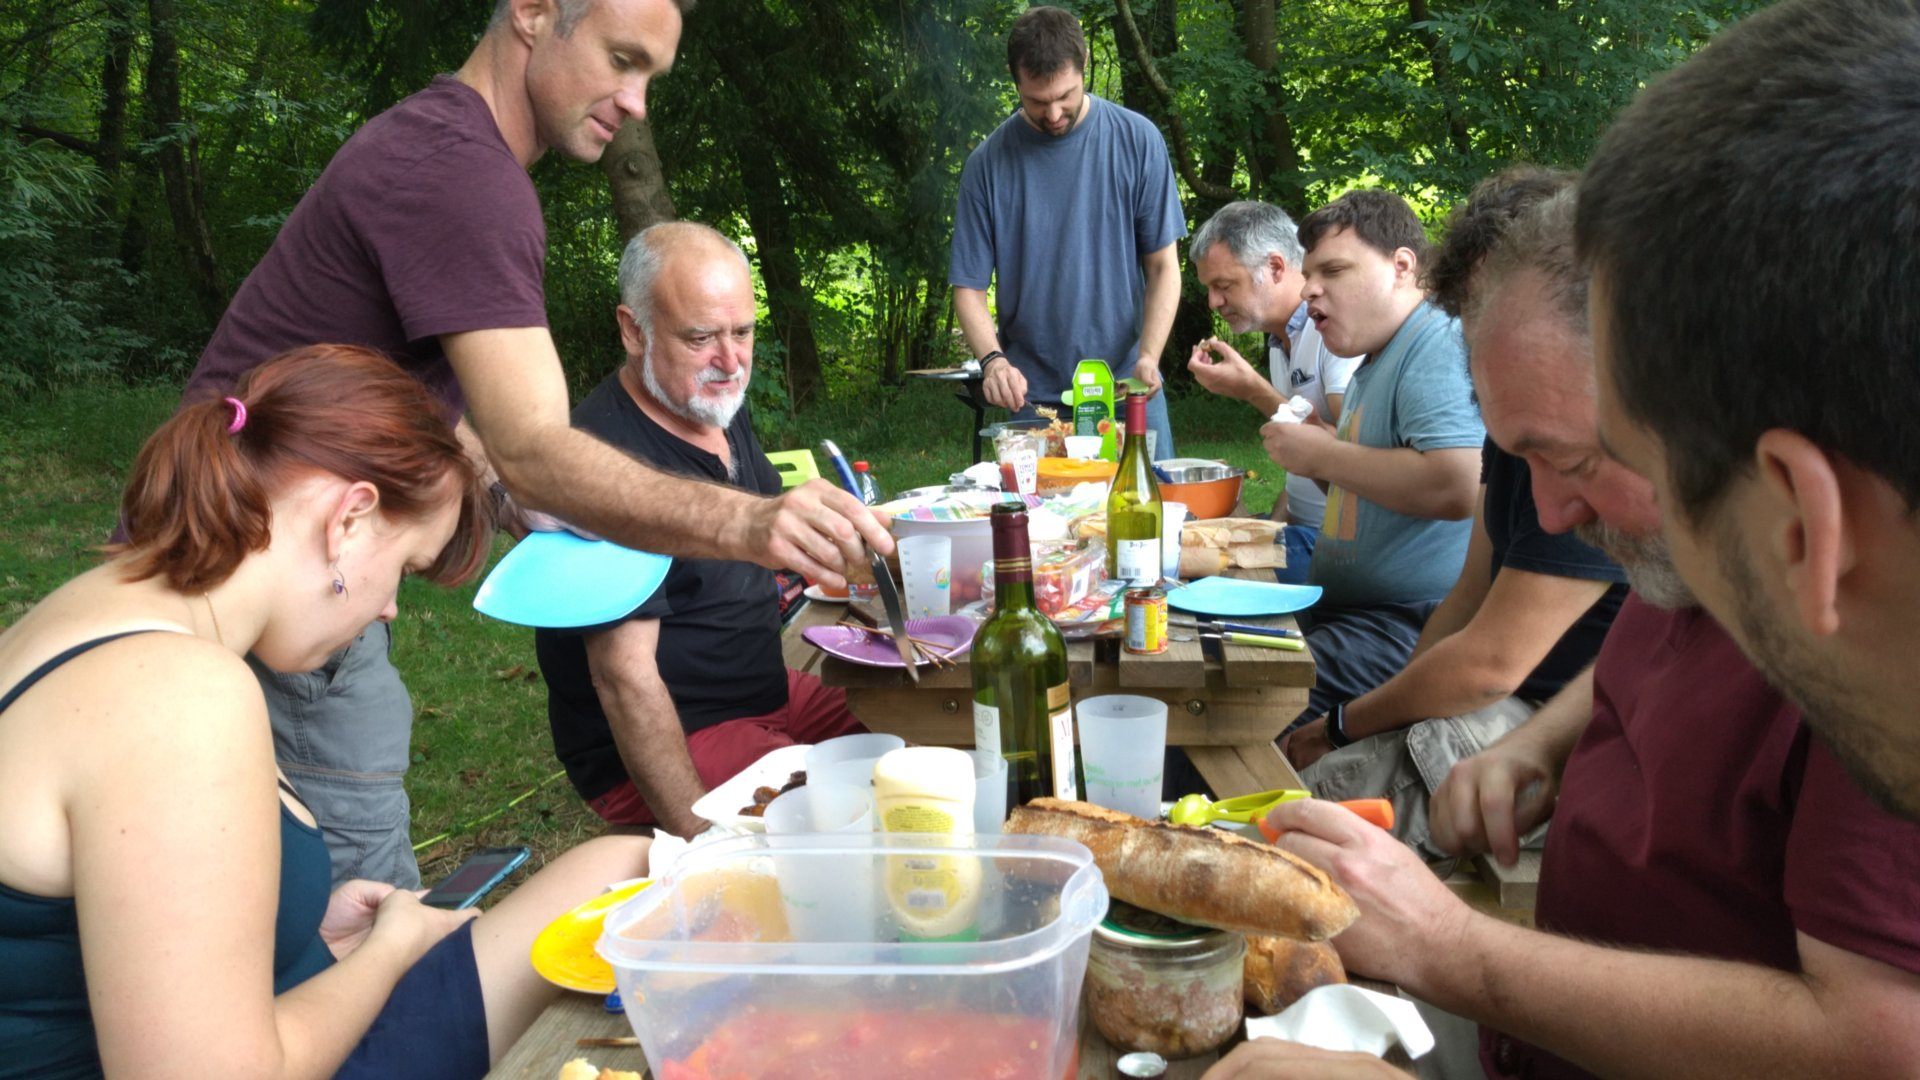 Barbecue 31 08 2019 15